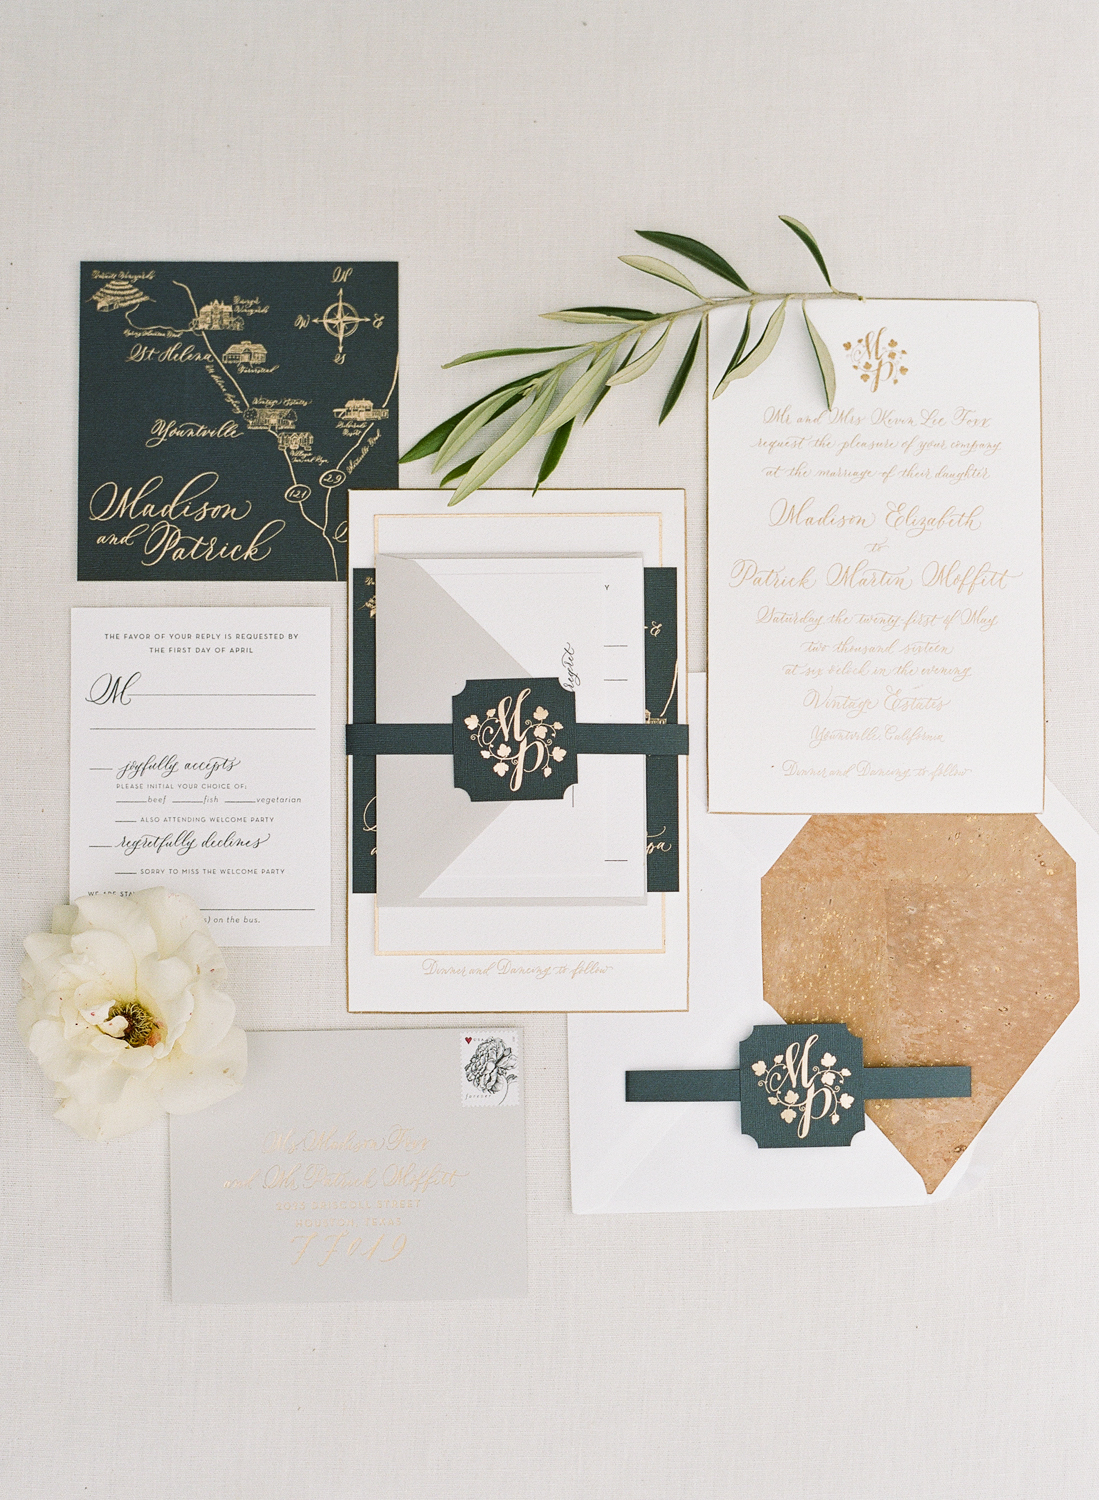 Papellerie classic invitation suite in black, white, and gold